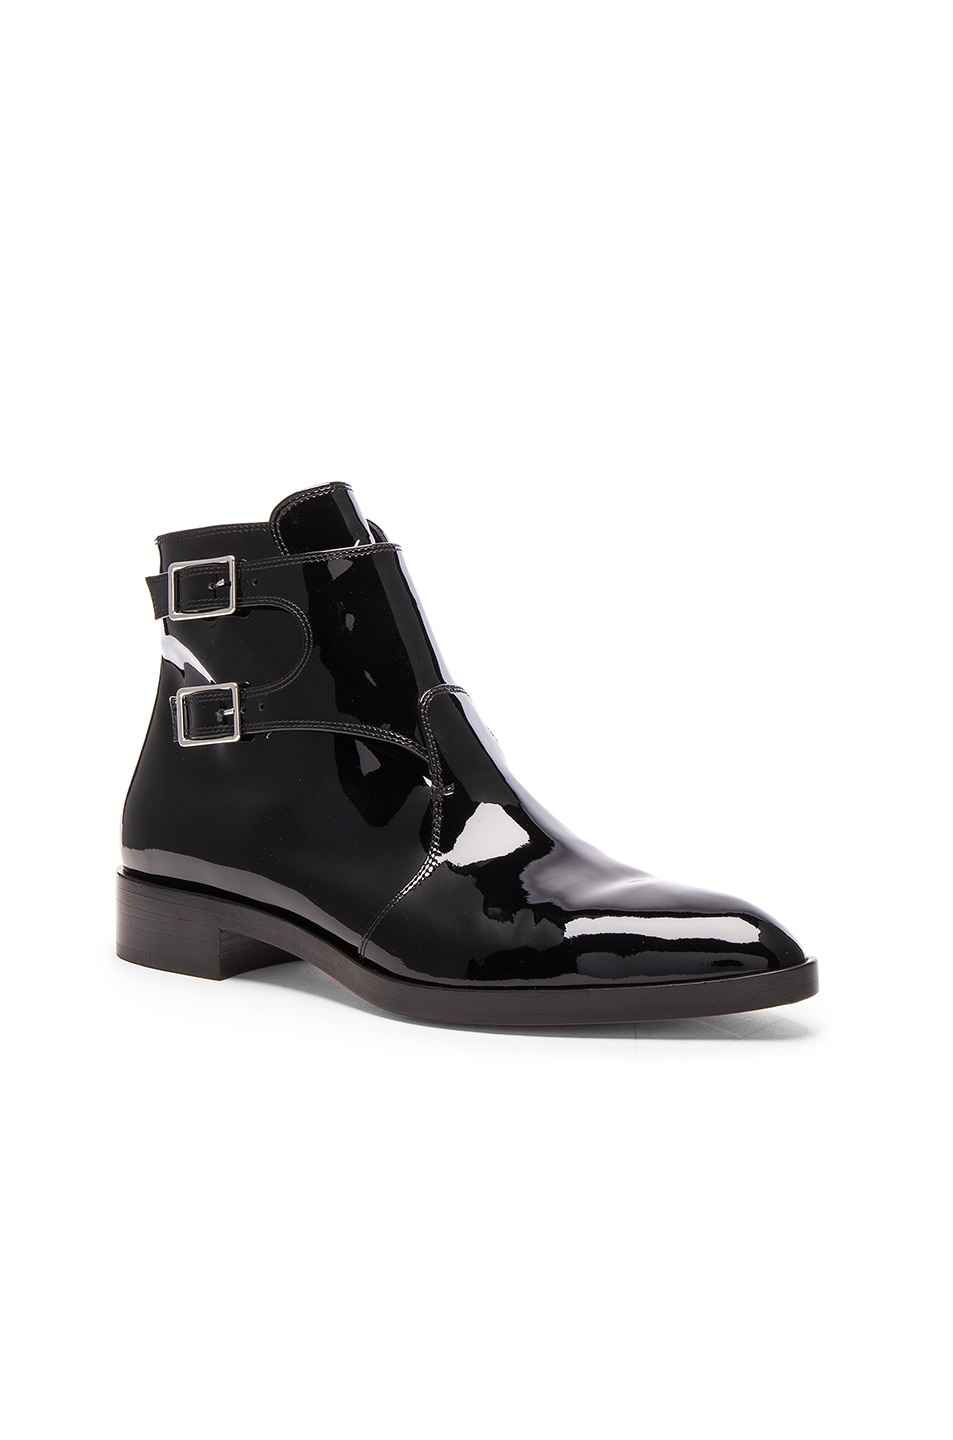 Image 2 of Gianvito Rossi Patent Leather Boots in Black